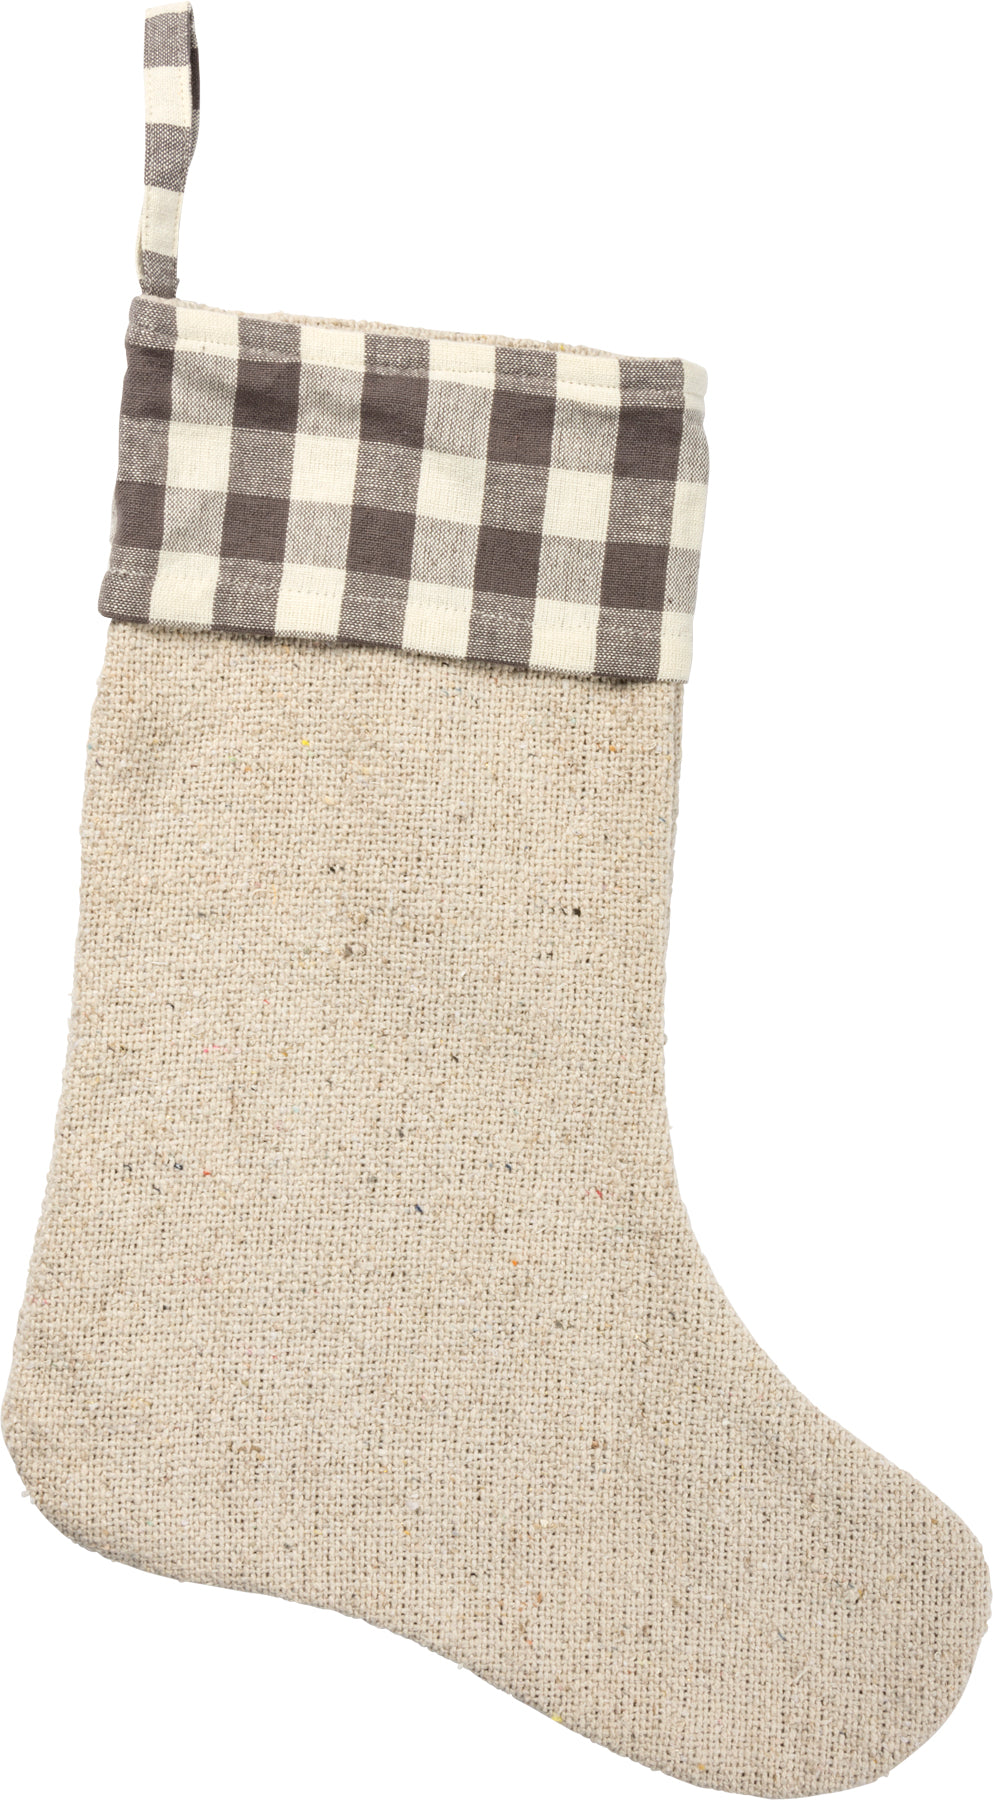 Farmhouse Burlap - Stocking